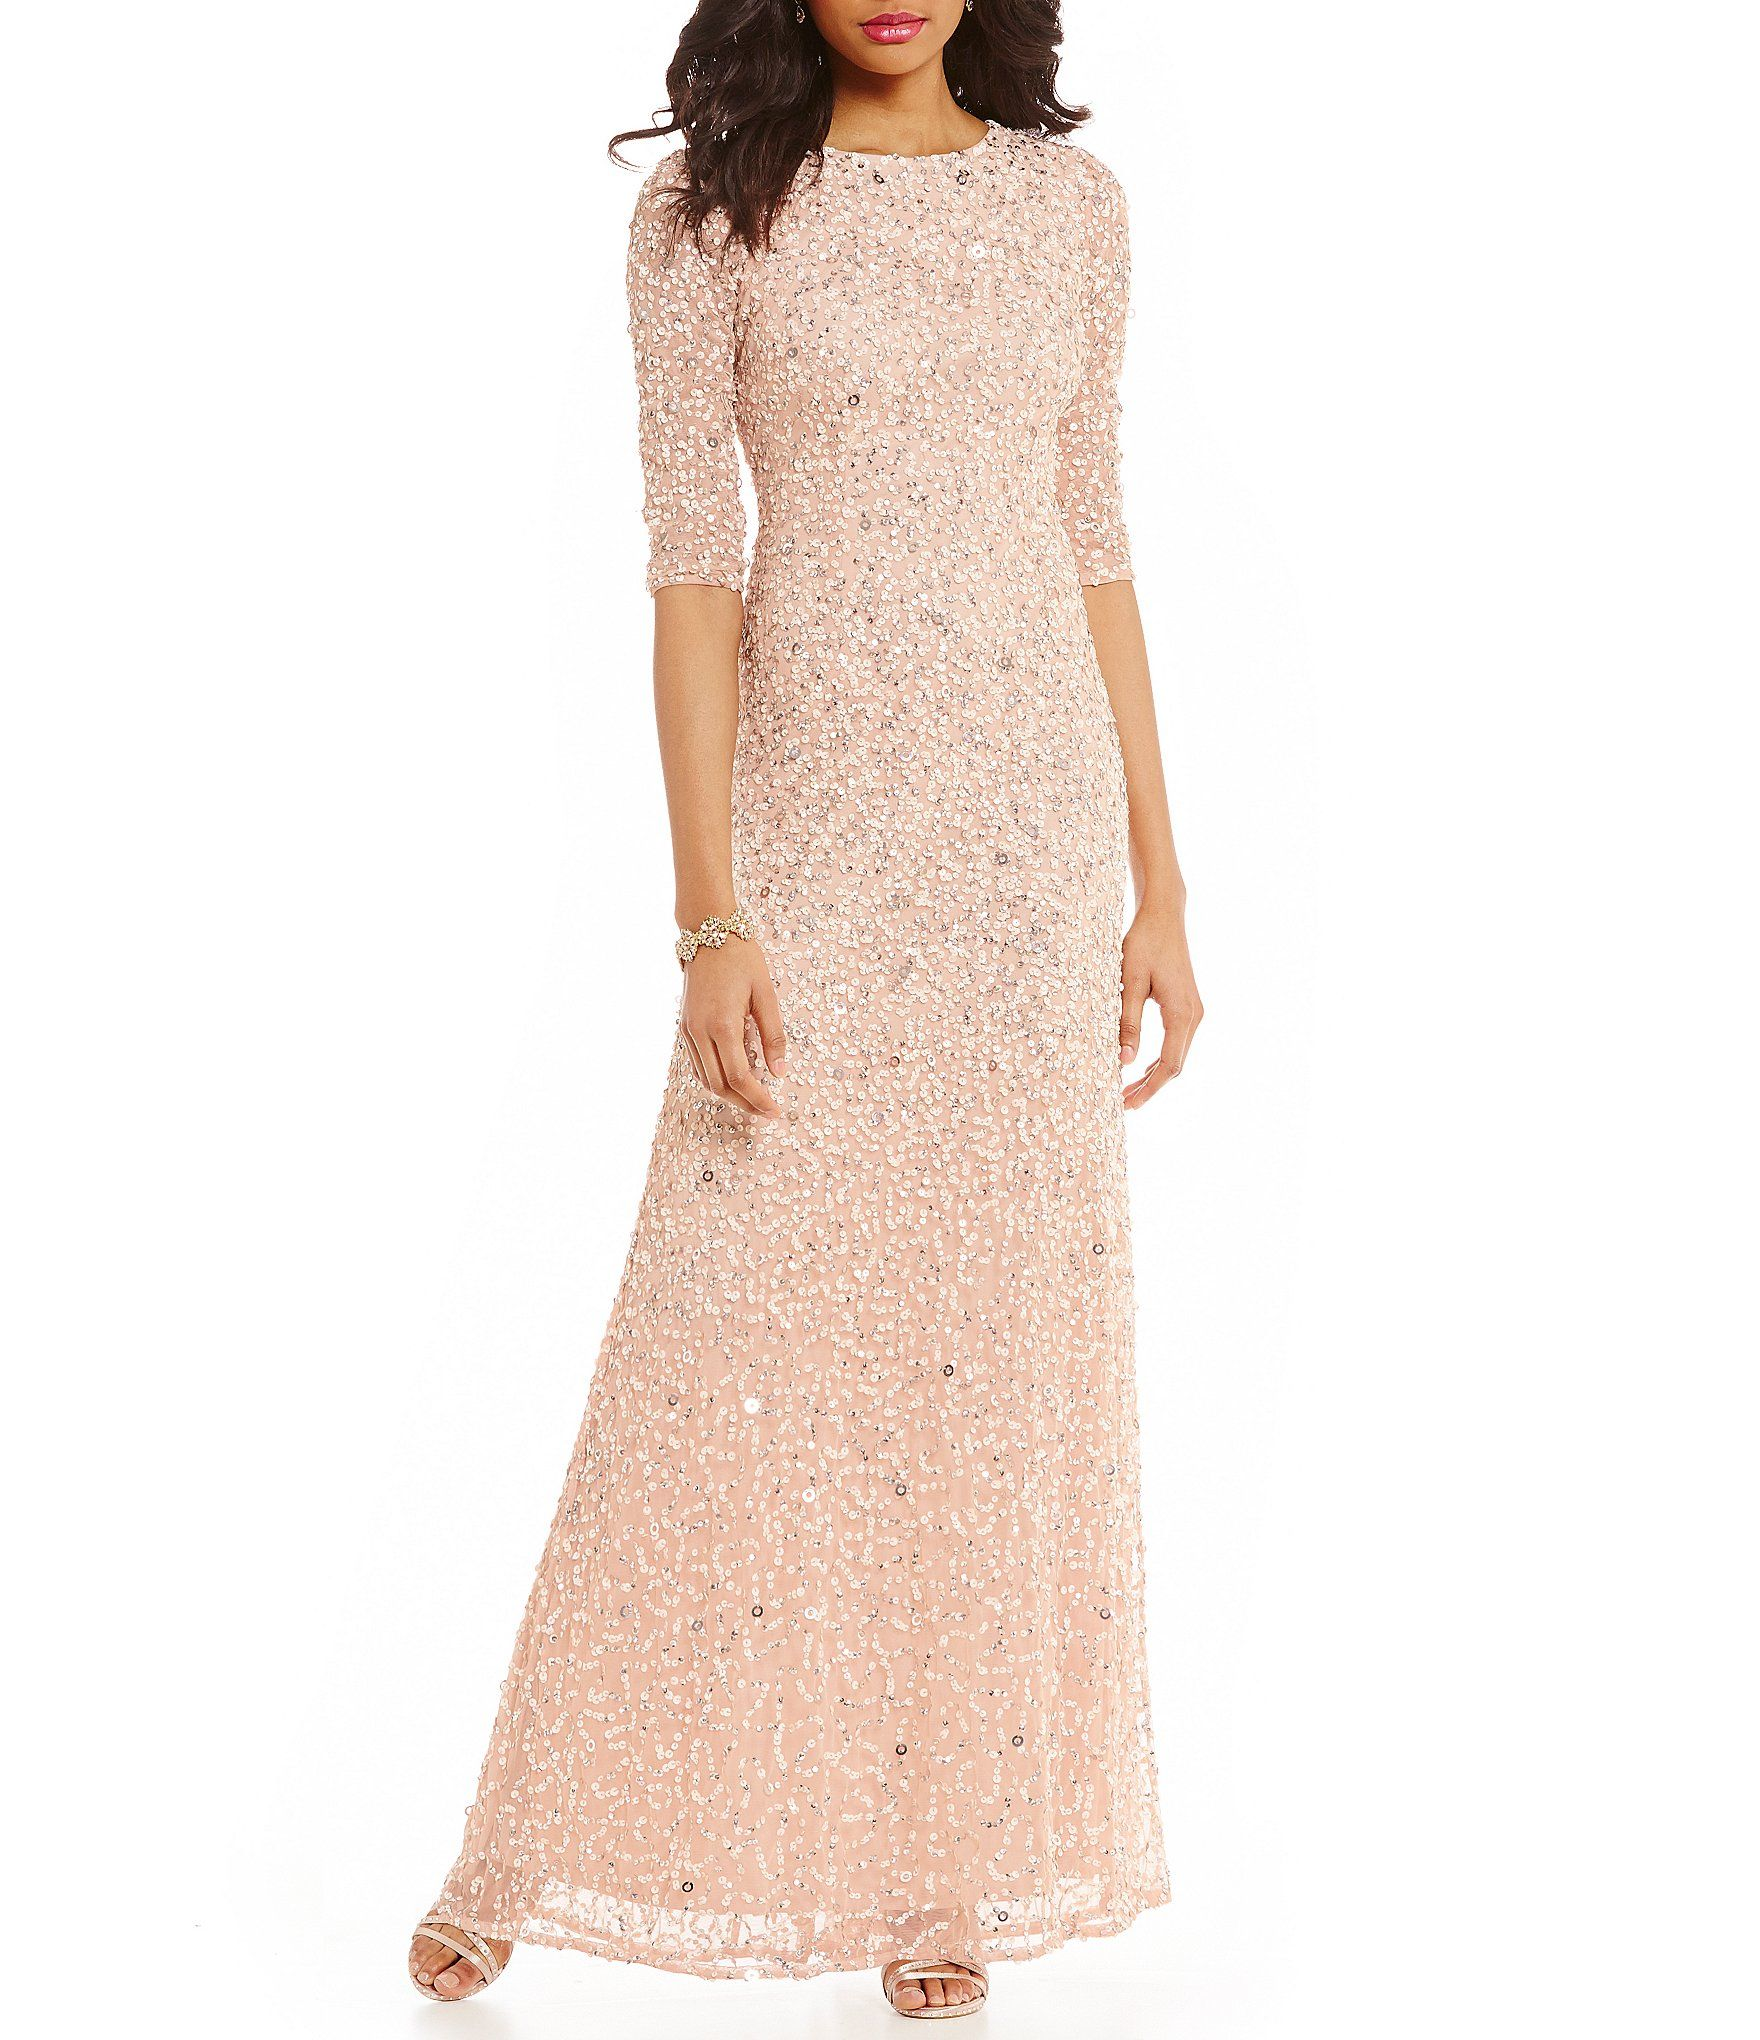 8e722aa52c1 Shop for Adrianna Papell 3 4 Sleeve Sequin Beaded Column Gown at Dillards.com.  Visit Dillards.com to find clothing